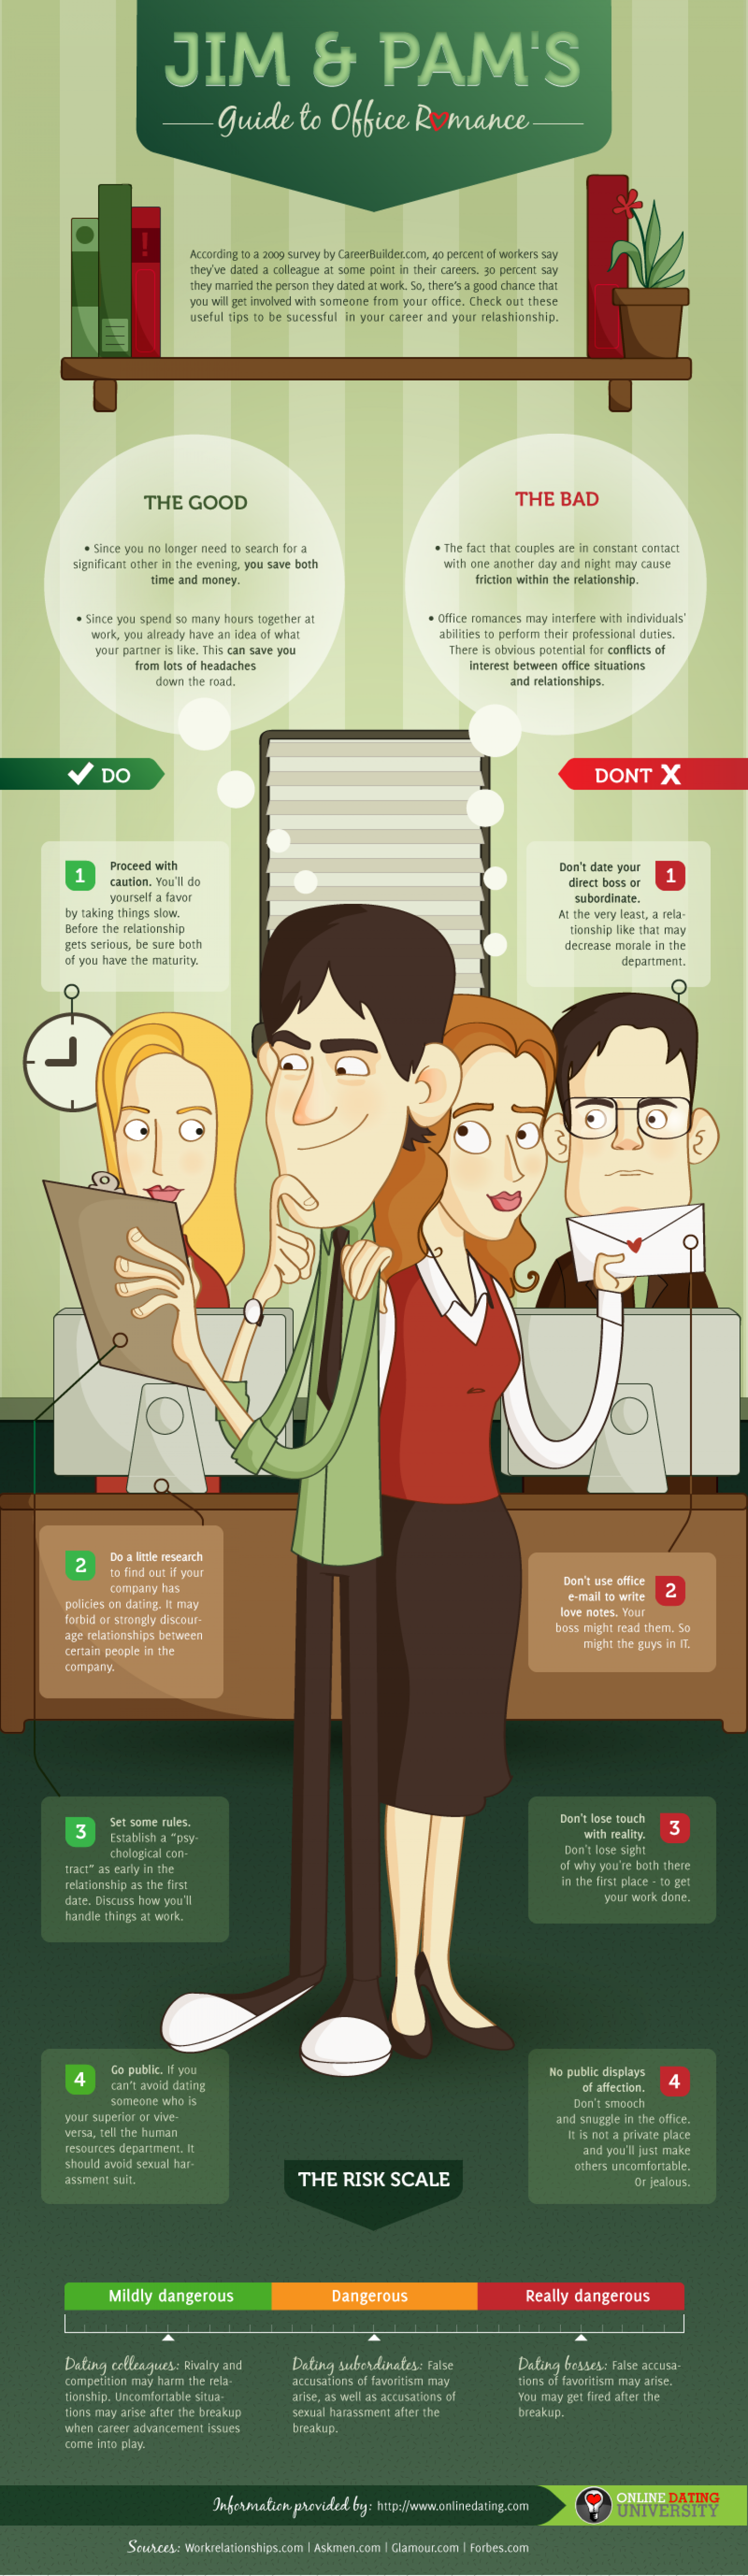 How Do You Feel About Office Romance? Infographic